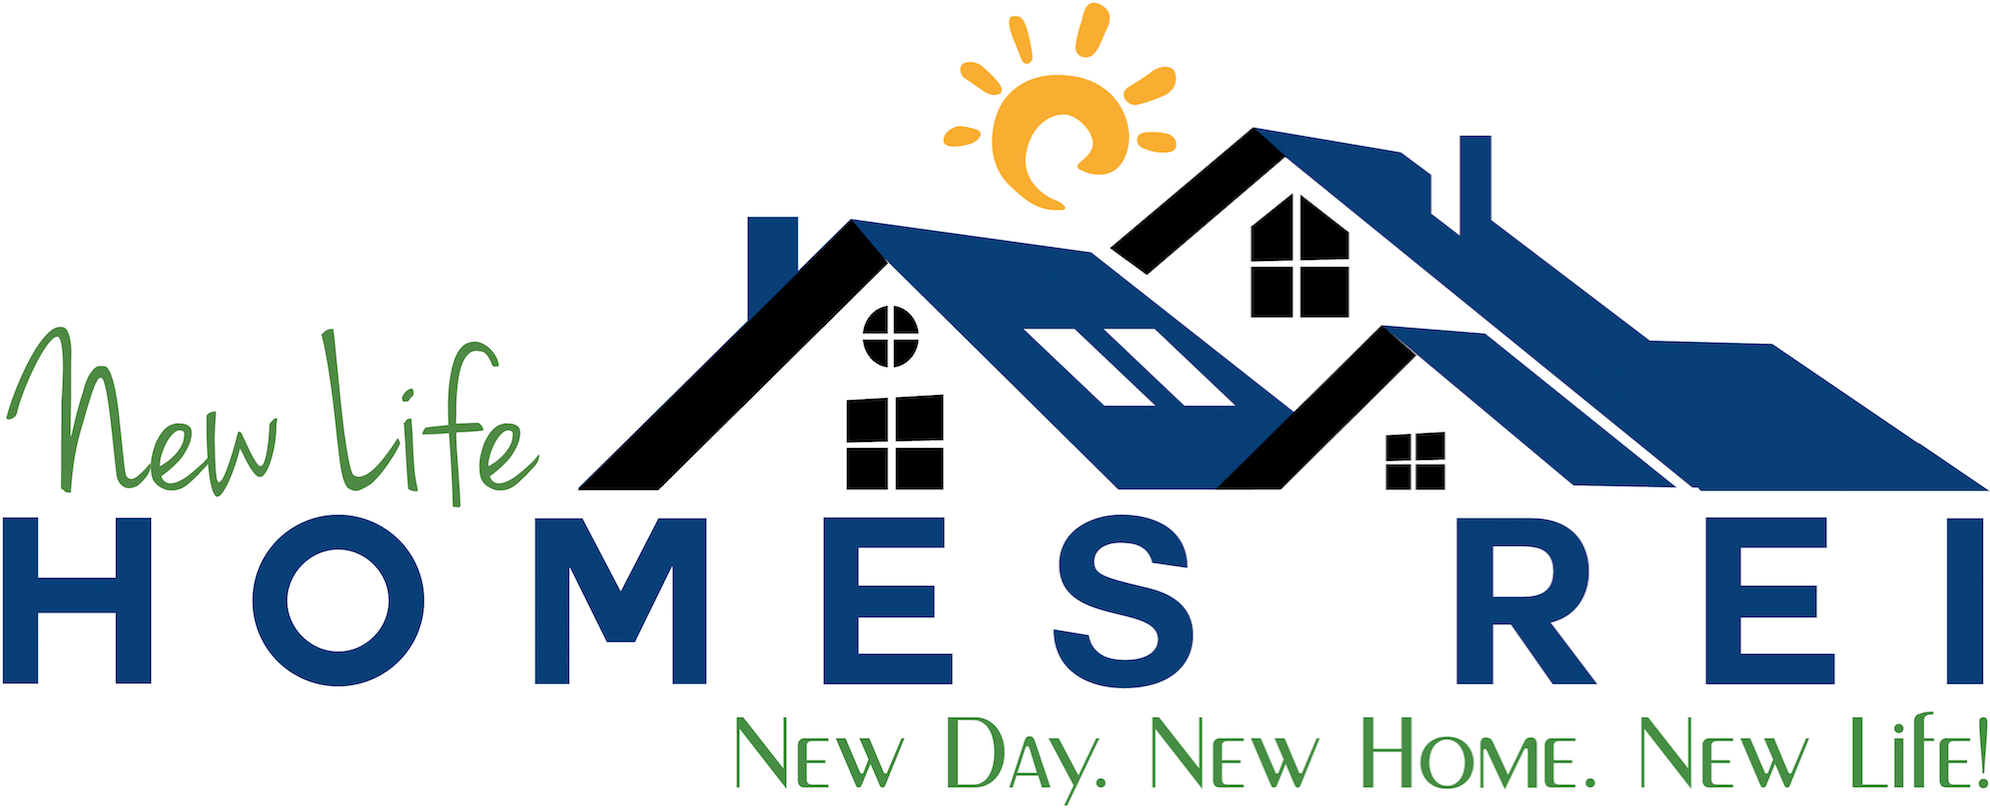 New Life Homes REI